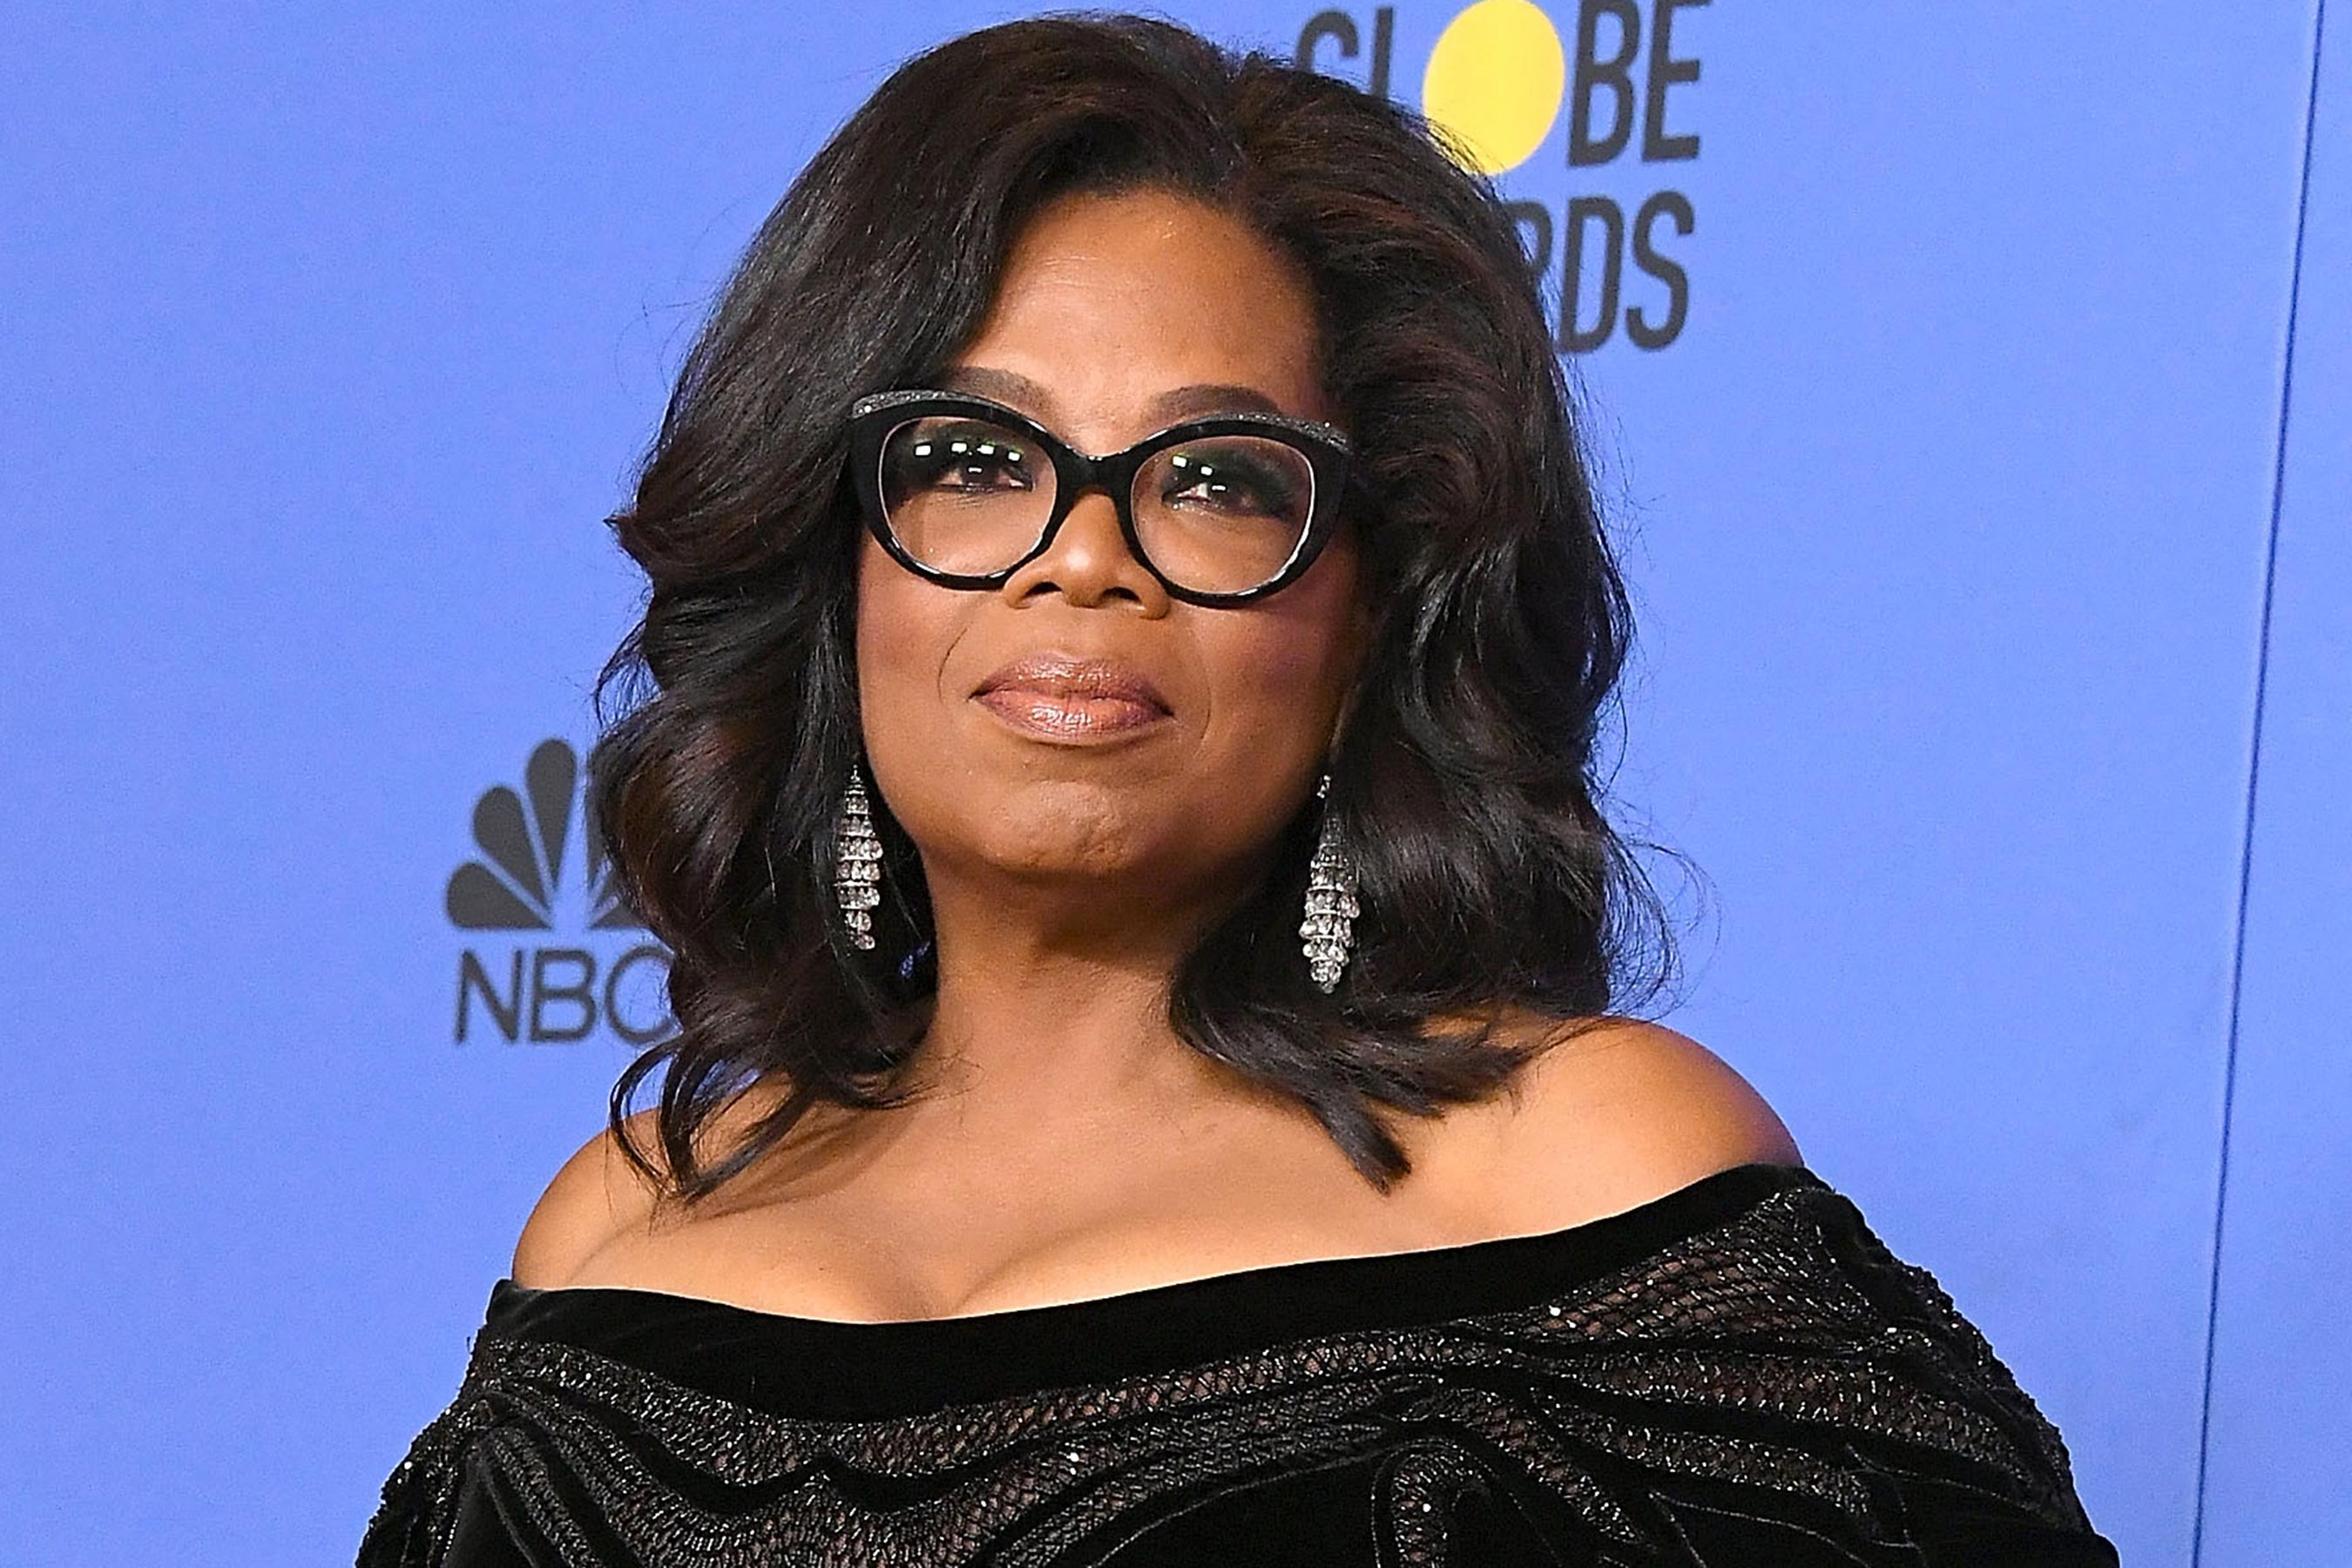 Oprah Winfrey breaks silence on calls for presidential campaign